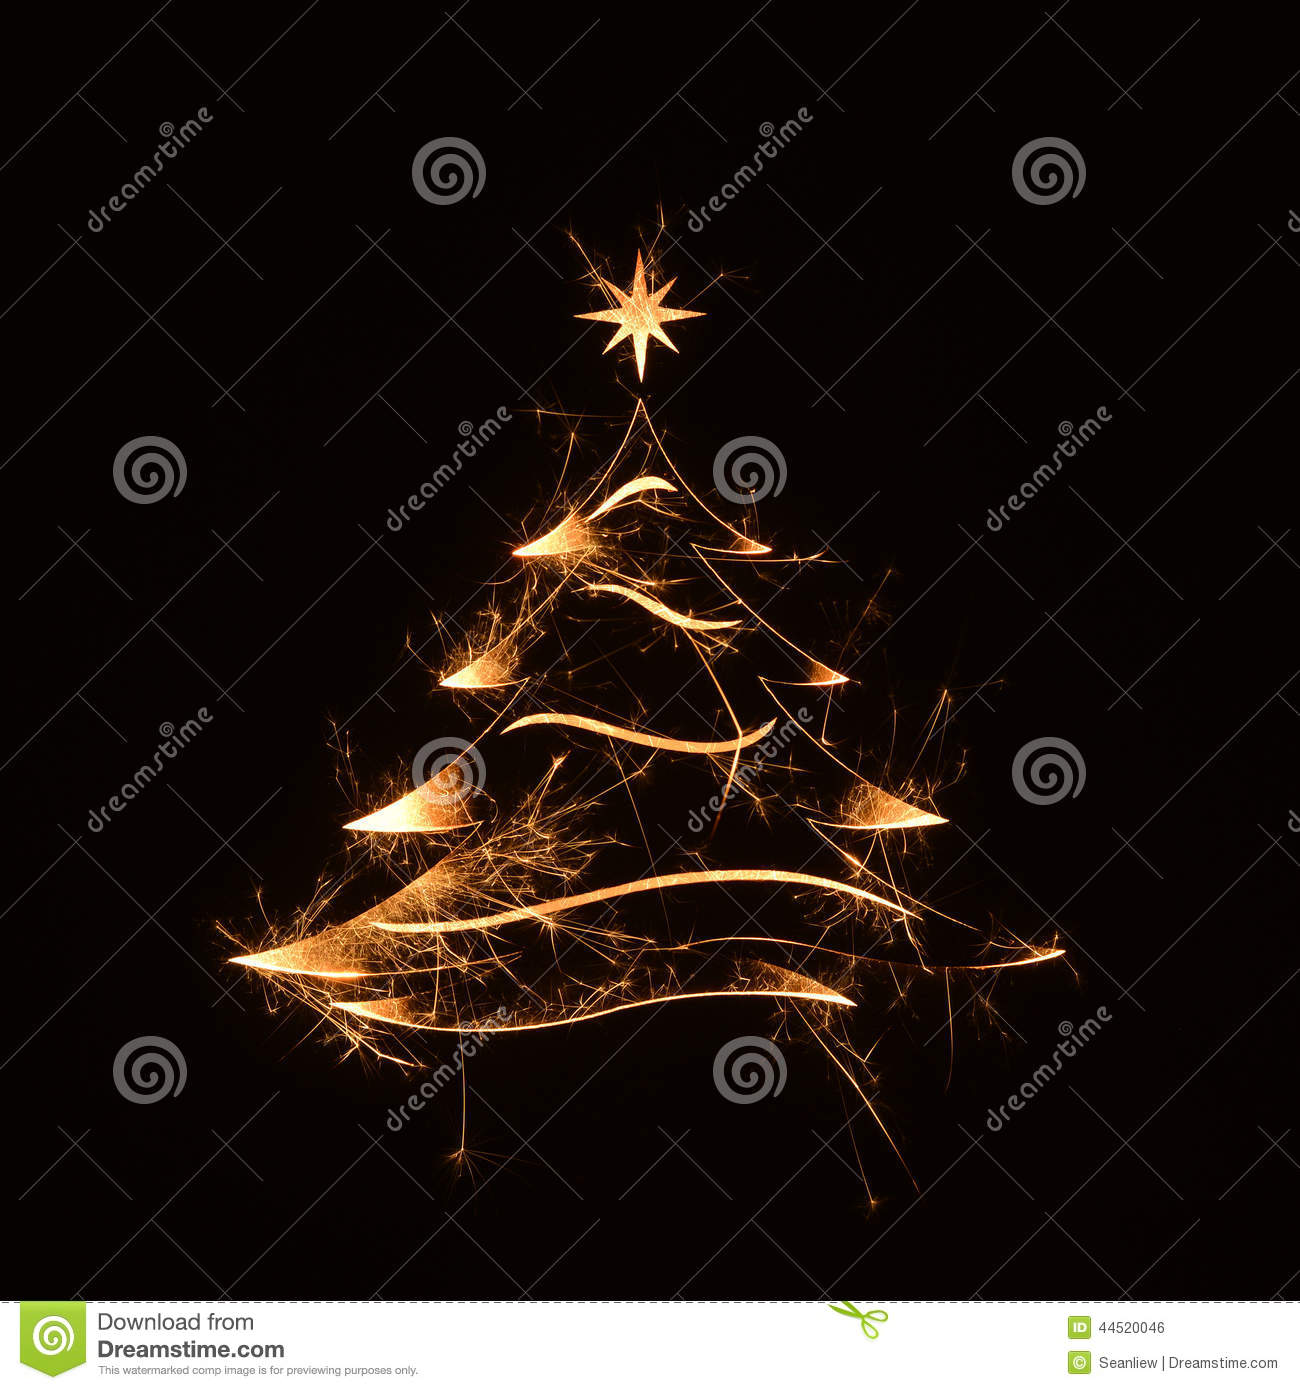 merry christmas tree greeting with stars image 44520046